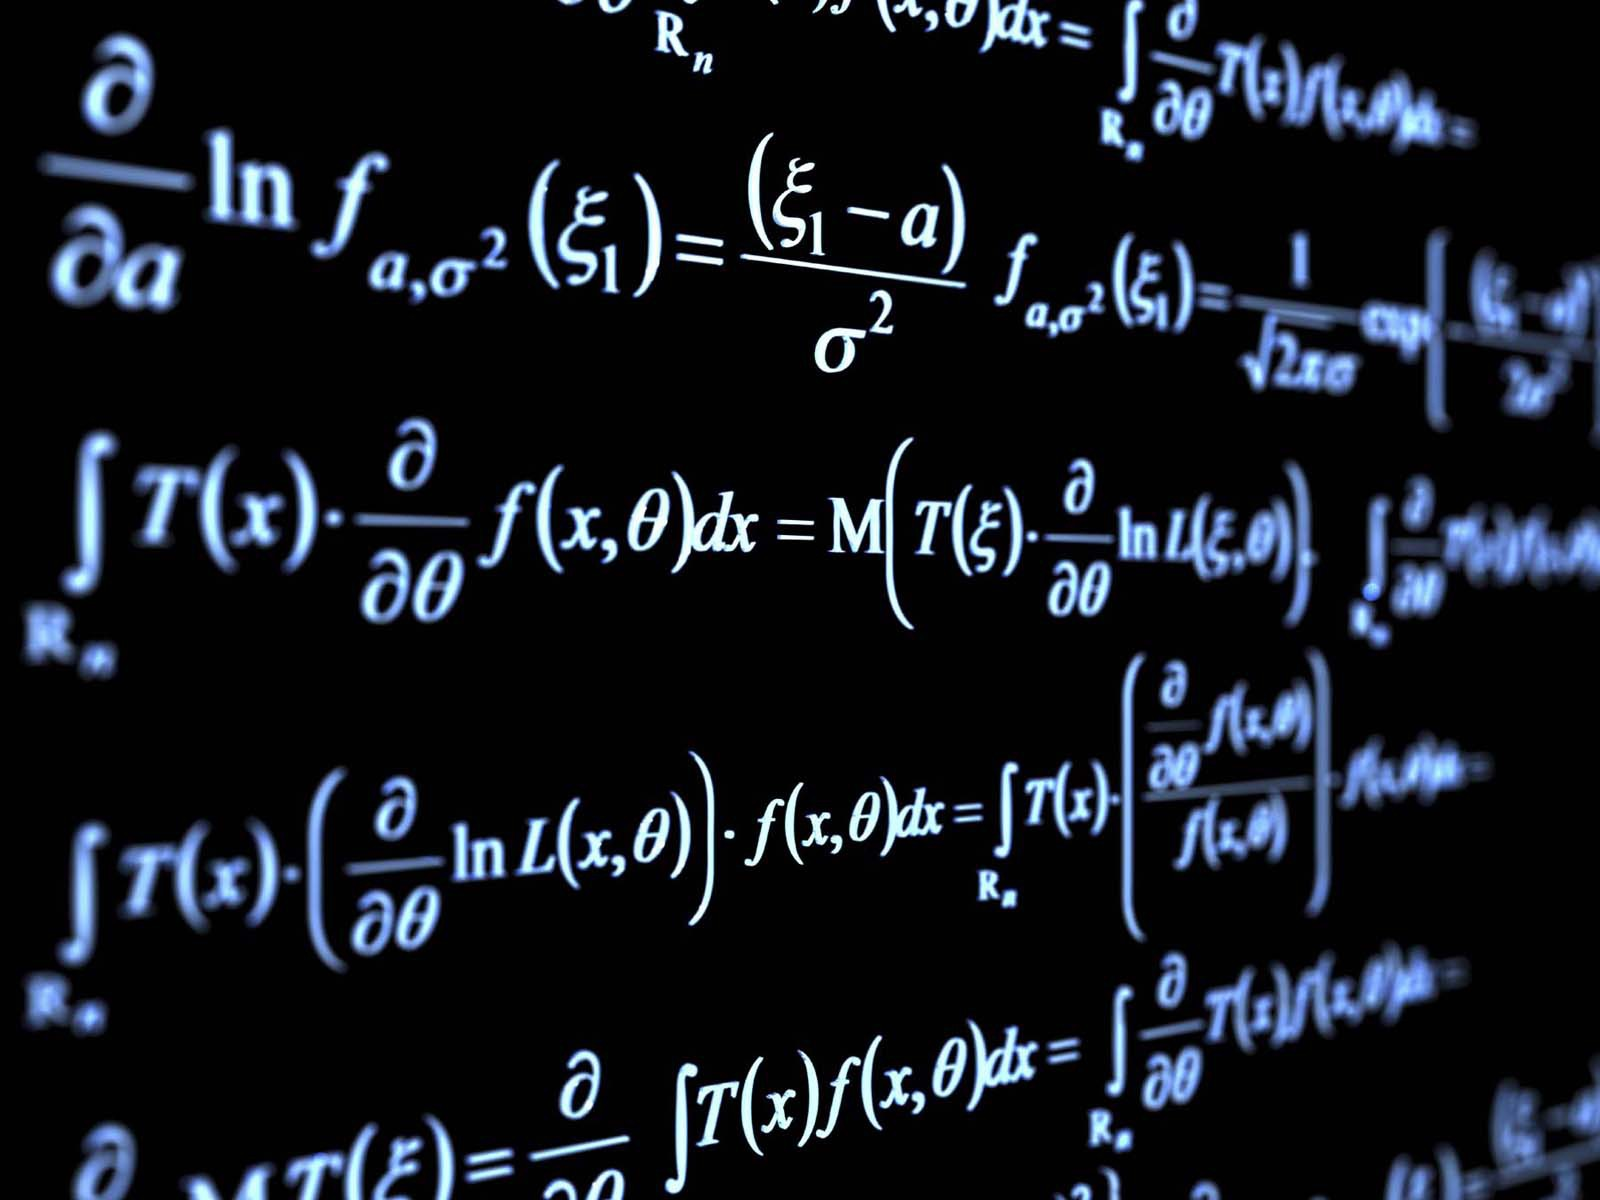 free-Pure-mathematics-formulæ-blackboard